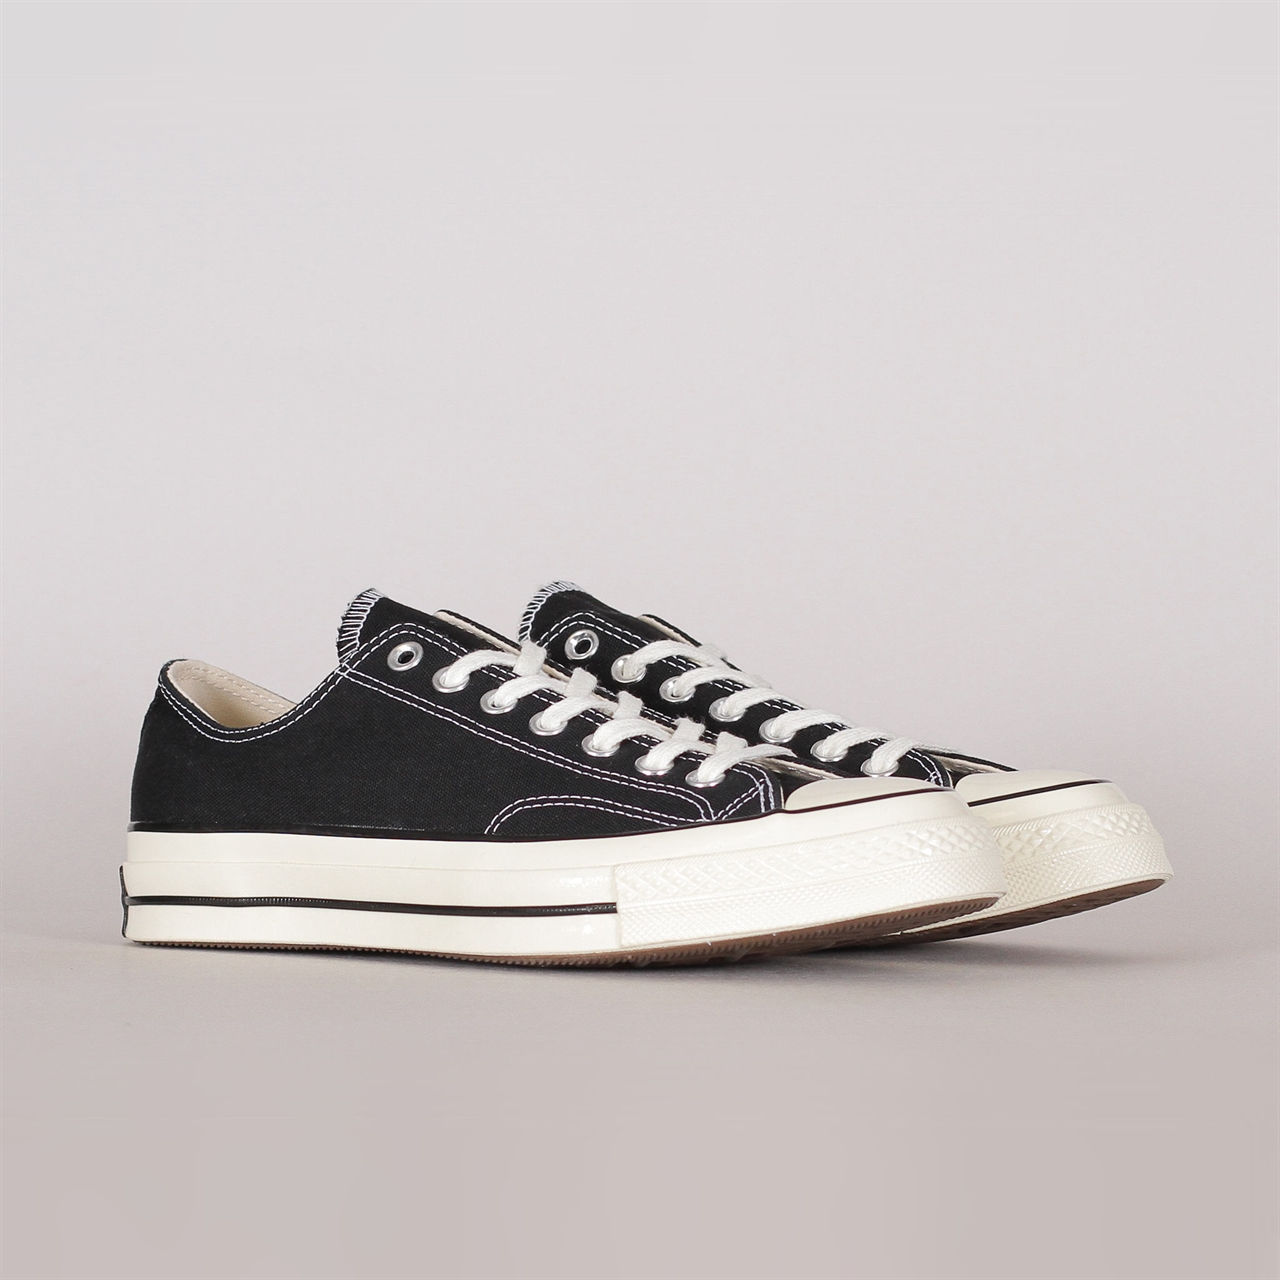 29db4ad2a67 Shelta - Converse Chuck Taylor All Star 70 Ox (162058C)